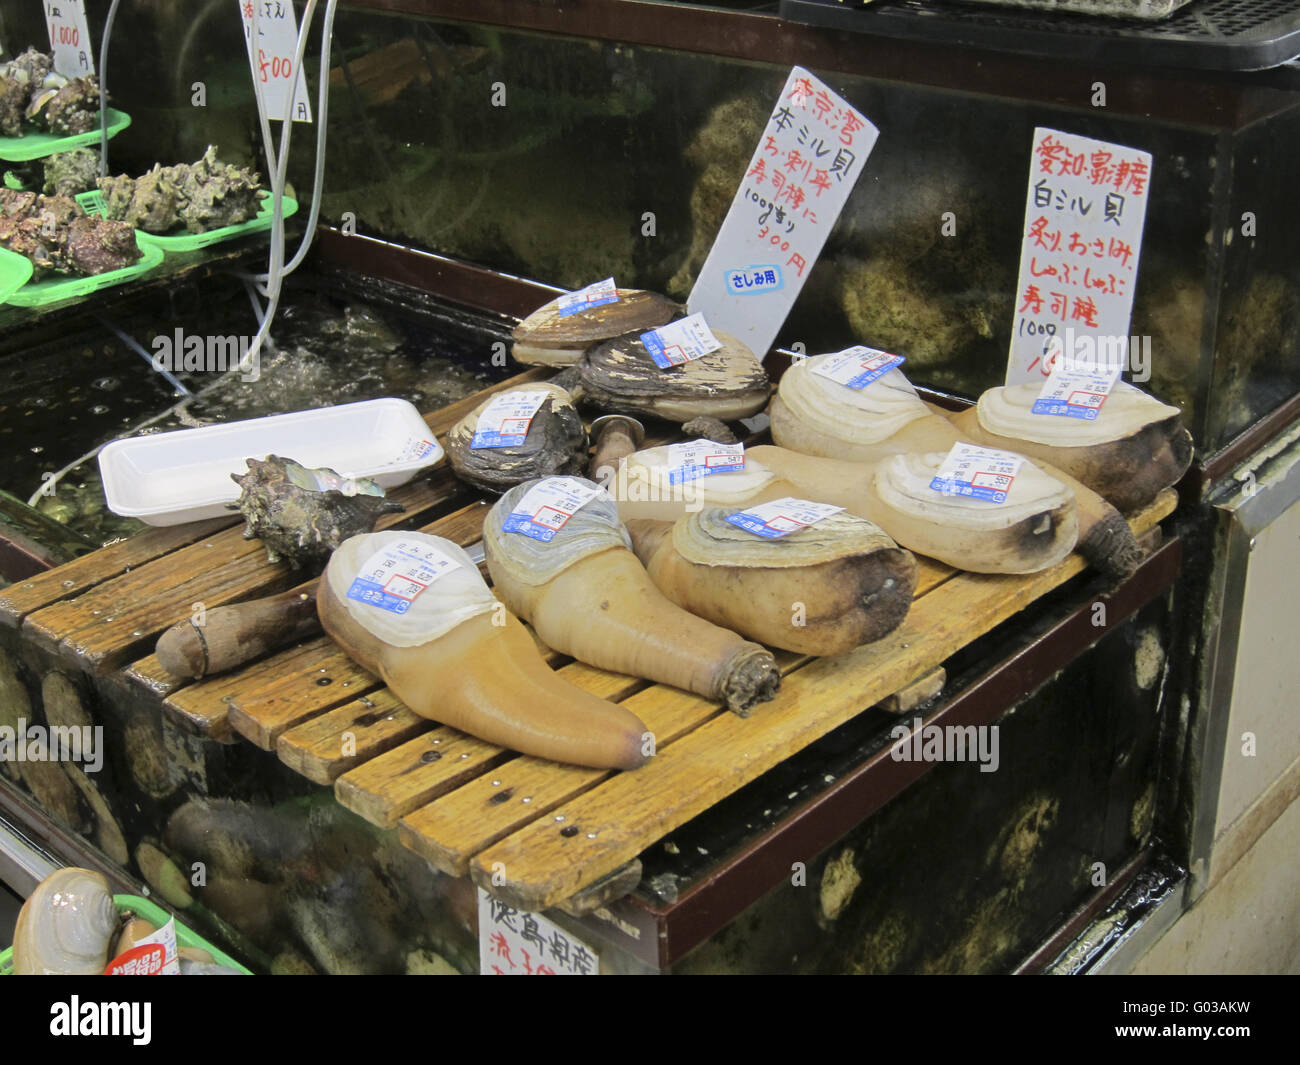 Fresh Seefood for sale, Japan. - Stock Image